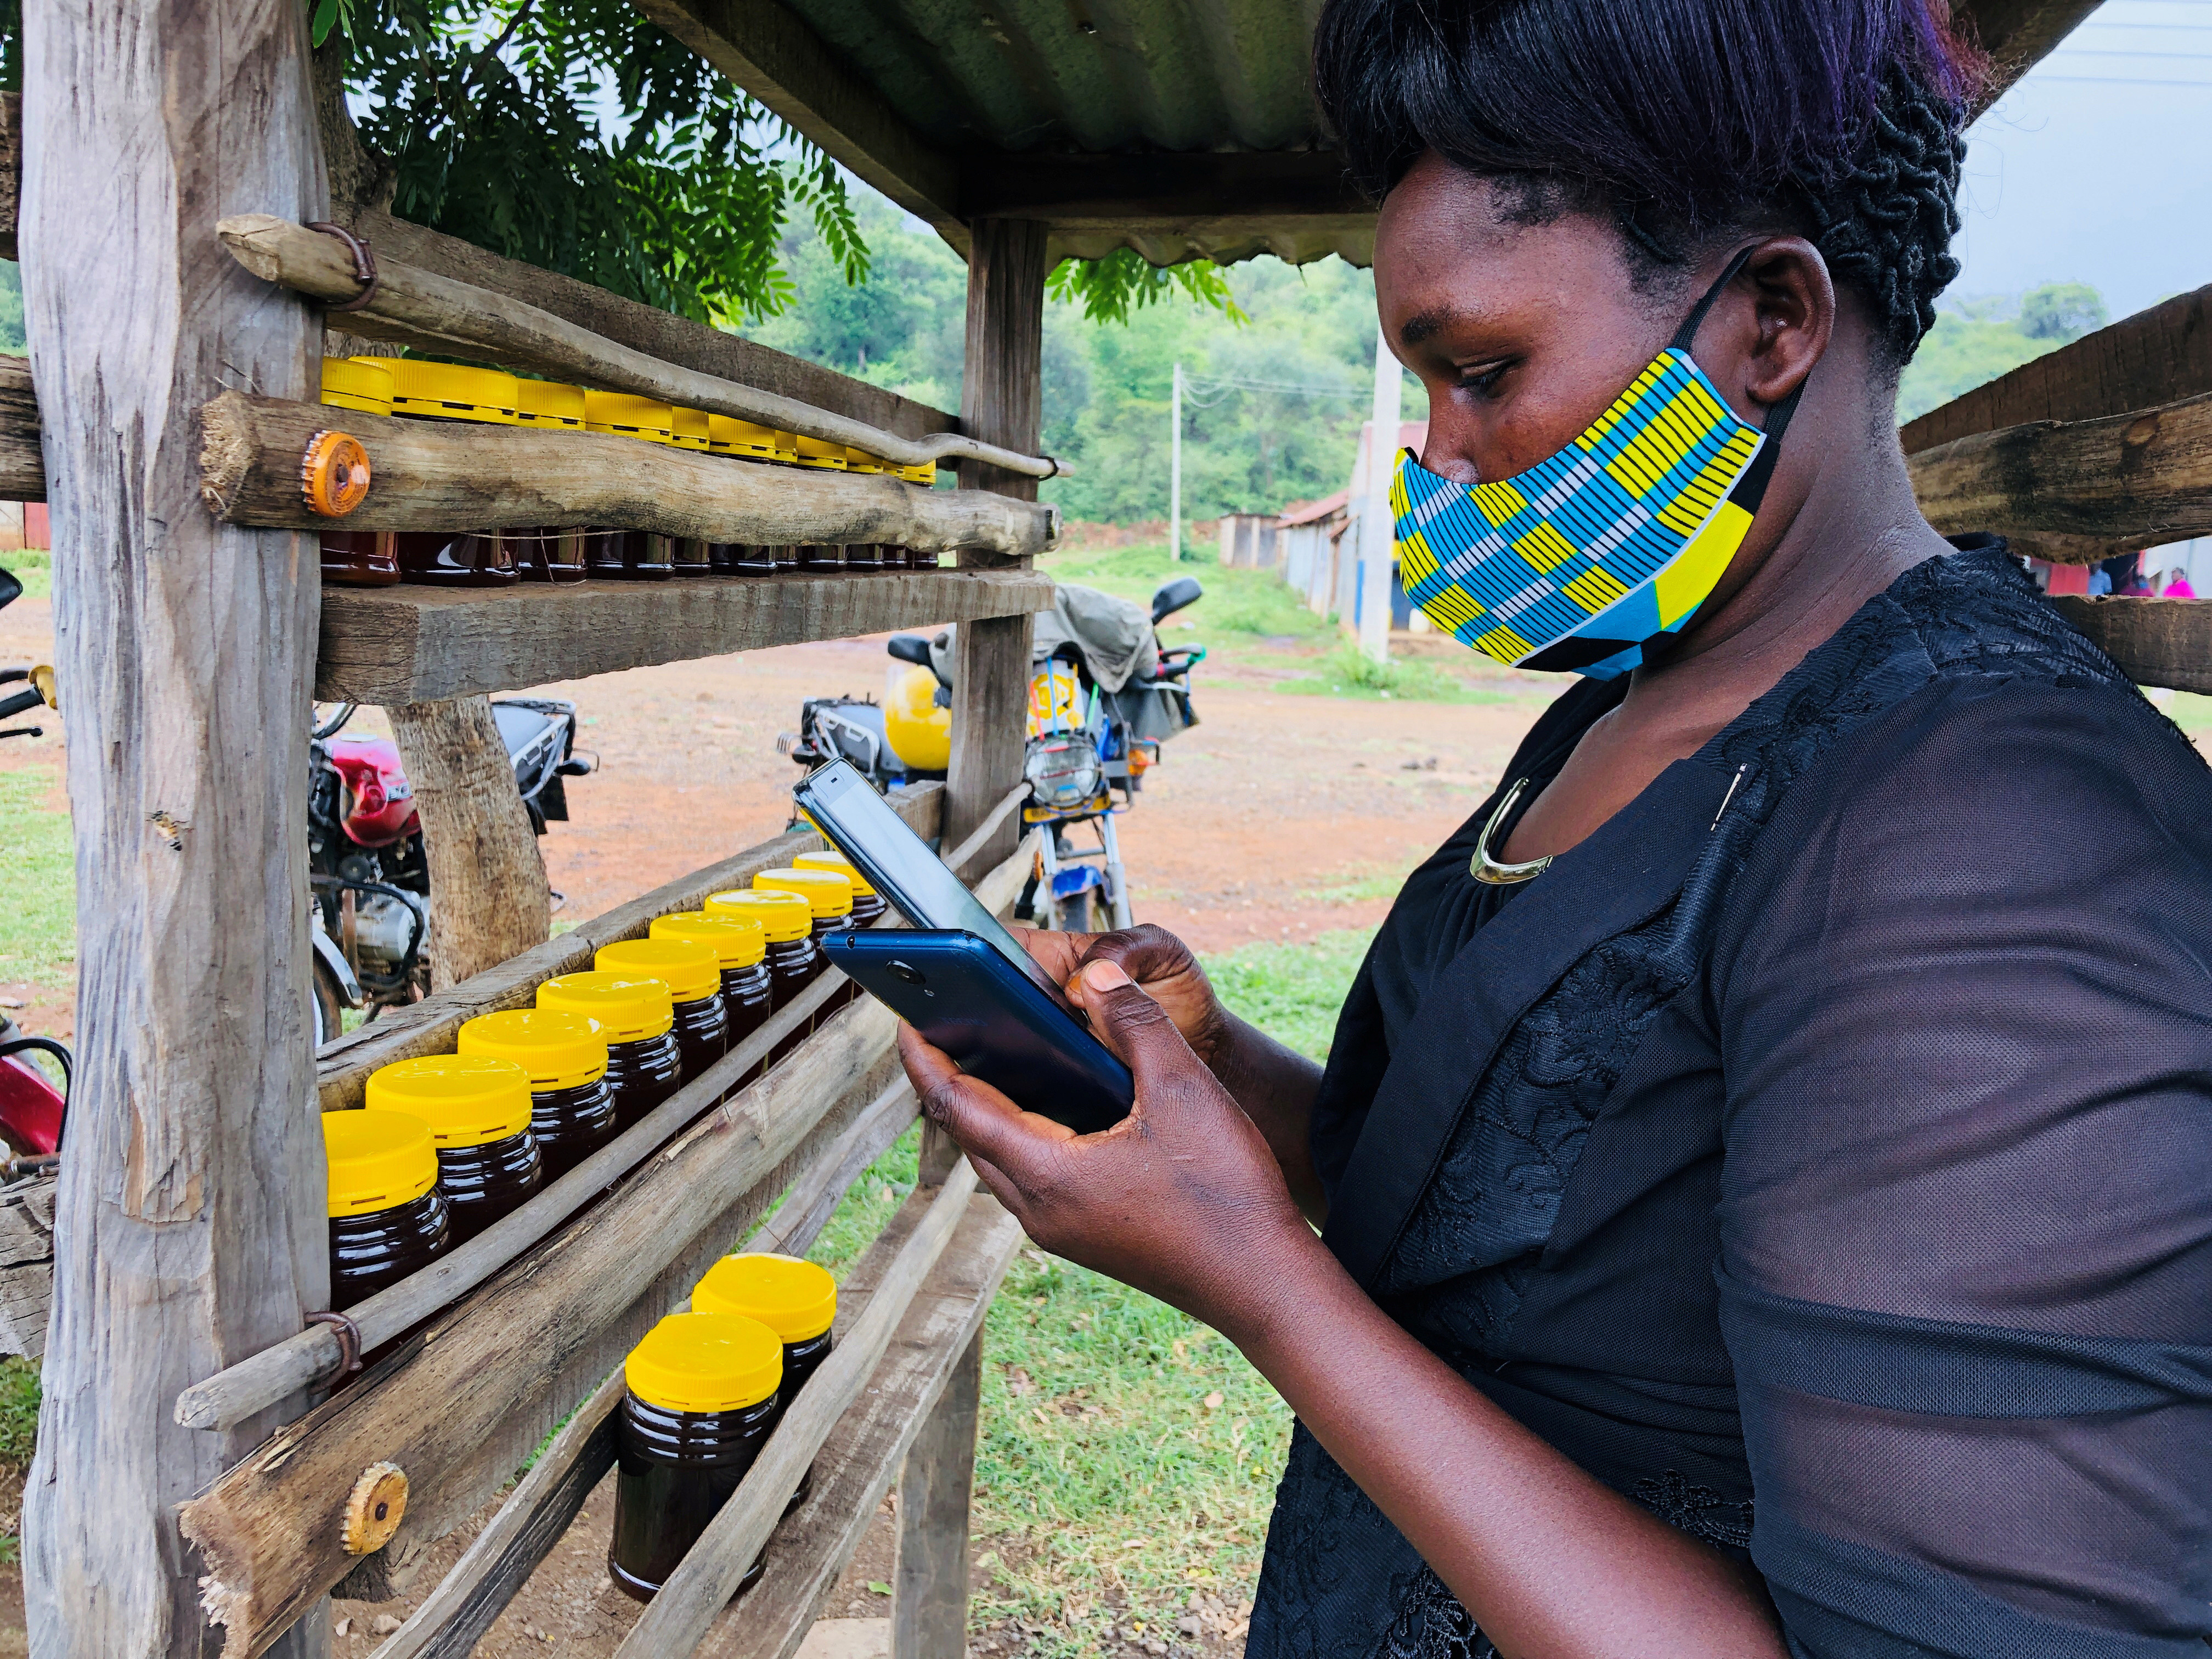 Dorcas Kipkeroi, a honey vendor uses her cell phone to test the Loon technology internet via video call as Alphabet Inc begins offering the world's first commercial high-speed internet using balloons to villagers in Radad, Baringo County, Kenya July 8, 2020. REUTERS/Jackson Njehia - RC22PH9Z5DUJ